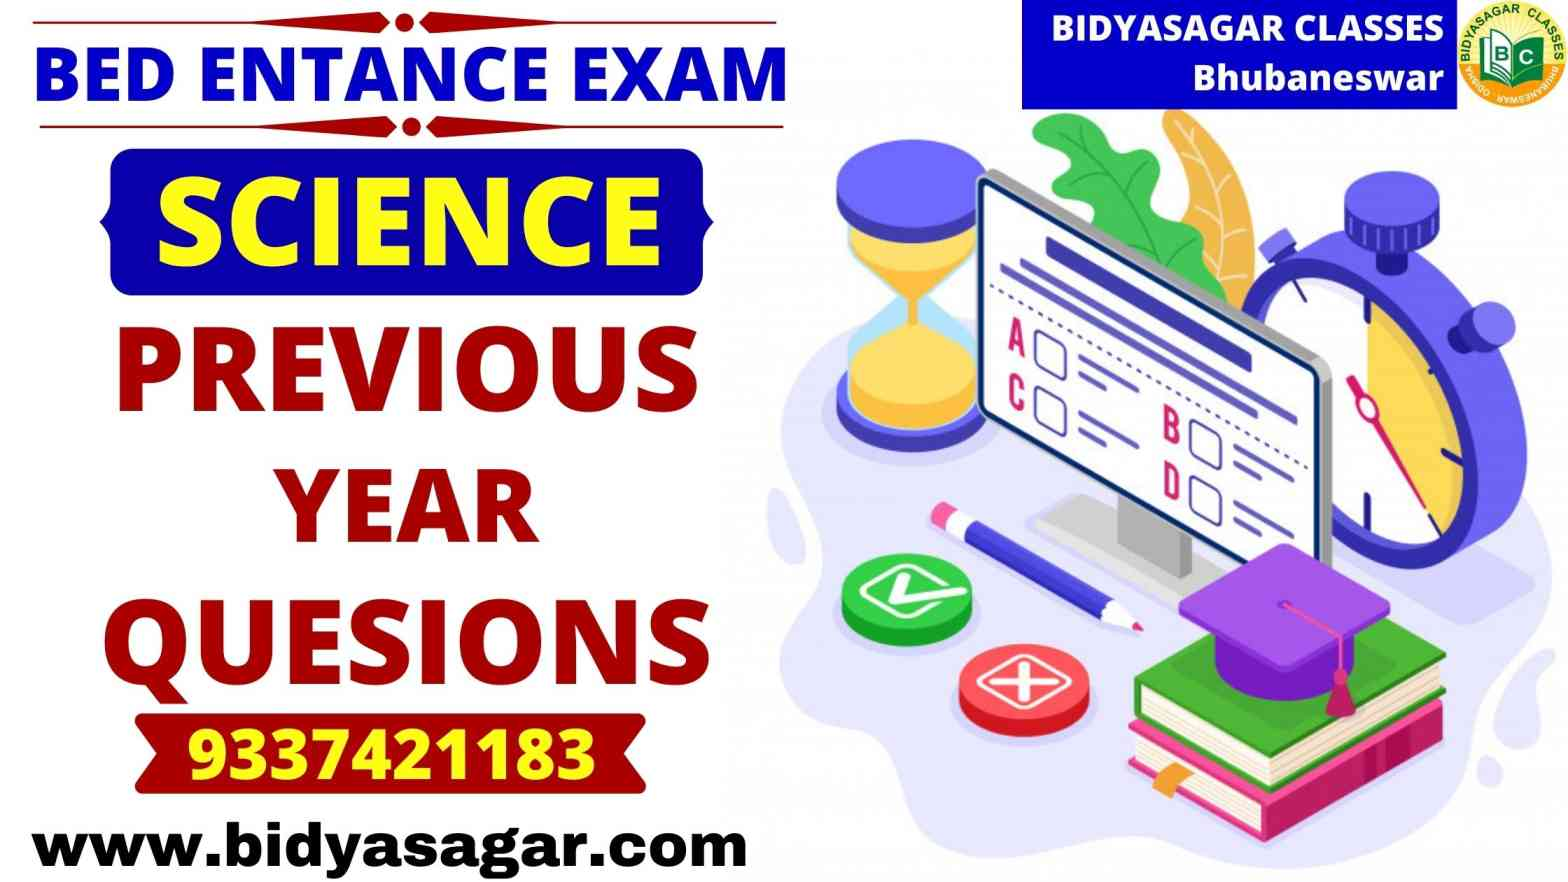 Odisha State B.Ed Entrance Exam Science Previous Year Questions